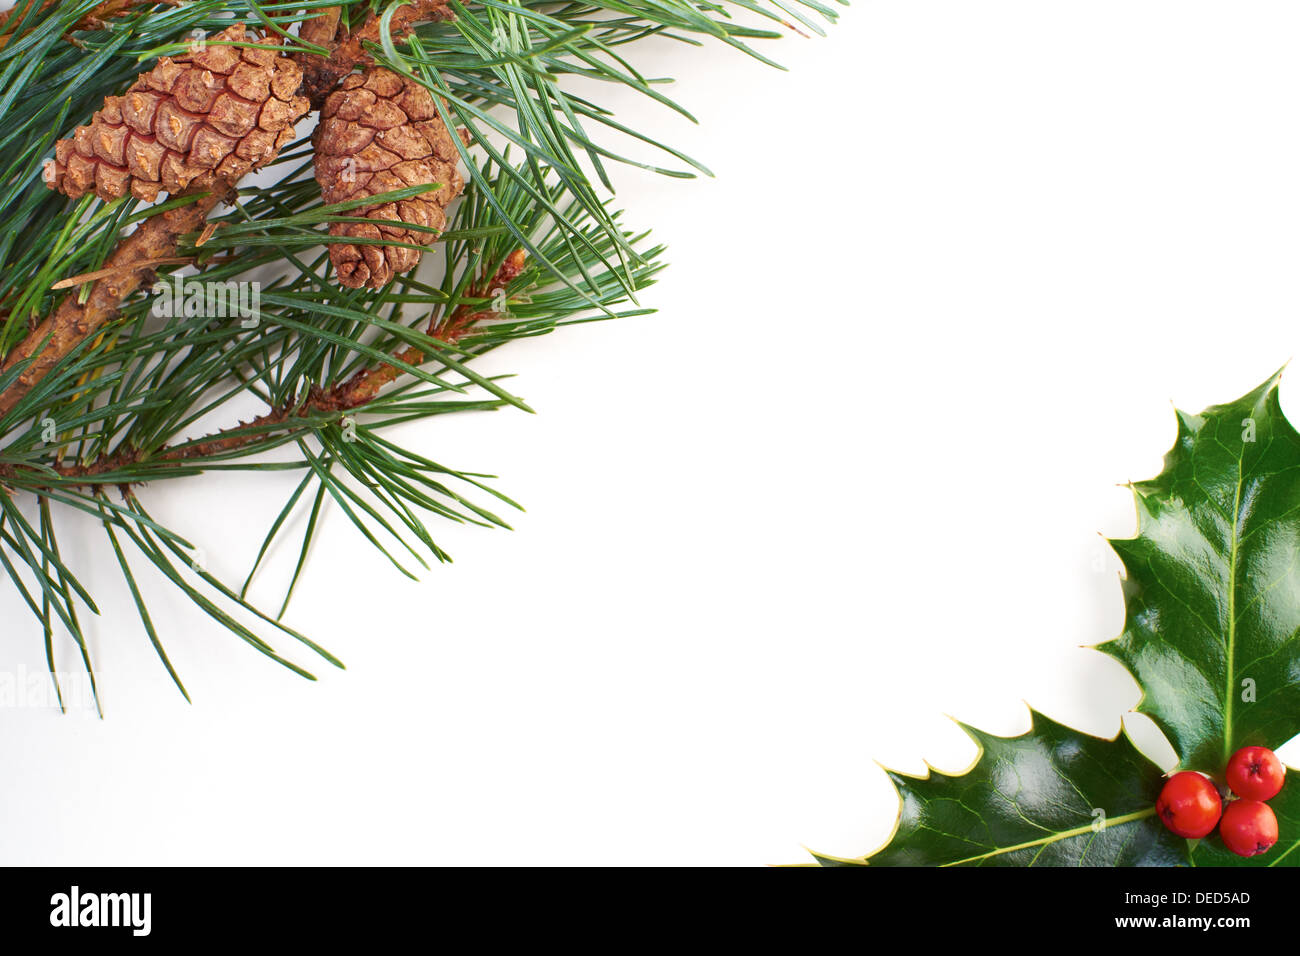 A Christmas pine tree branch and cone on a white background. - Stock Image